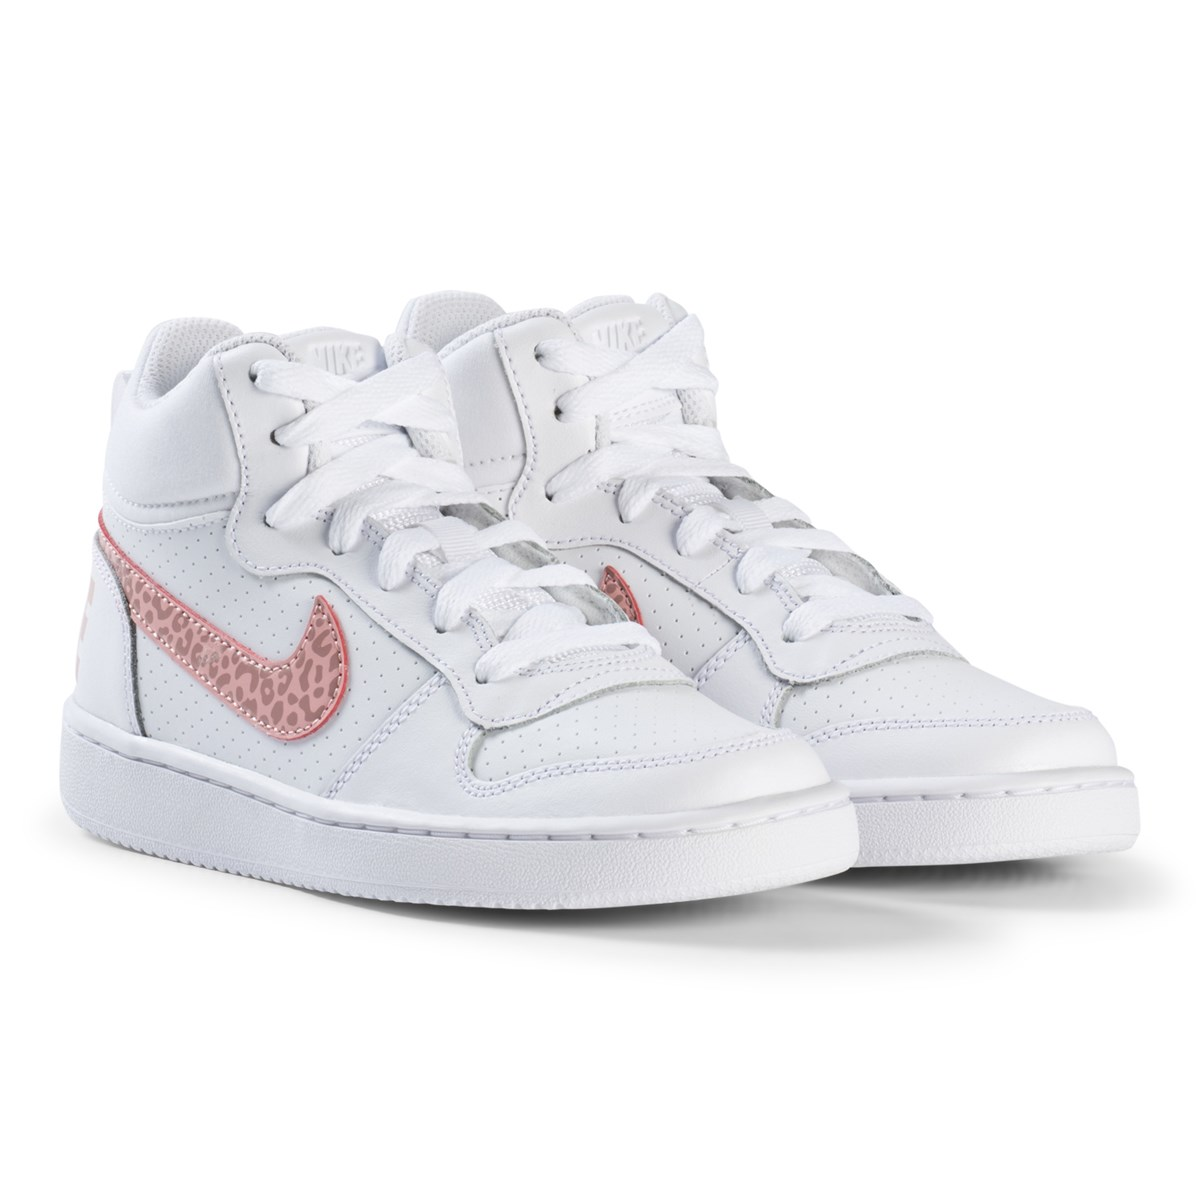 huge discount 2bca3 930c1 white and rust pink nike court borough mid shoes